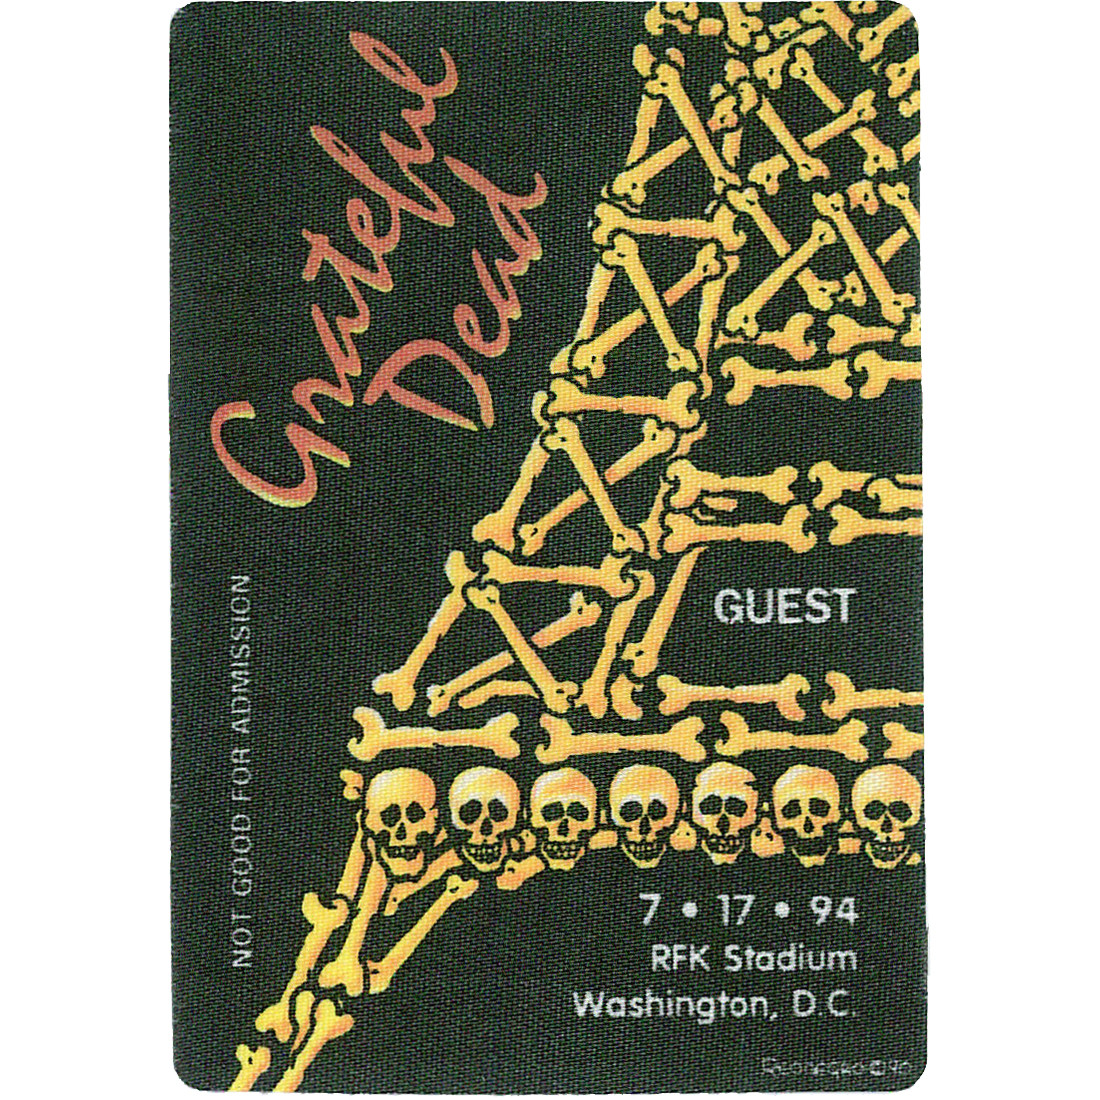 Grateful Dead 1994 07-17 Backstage Pass